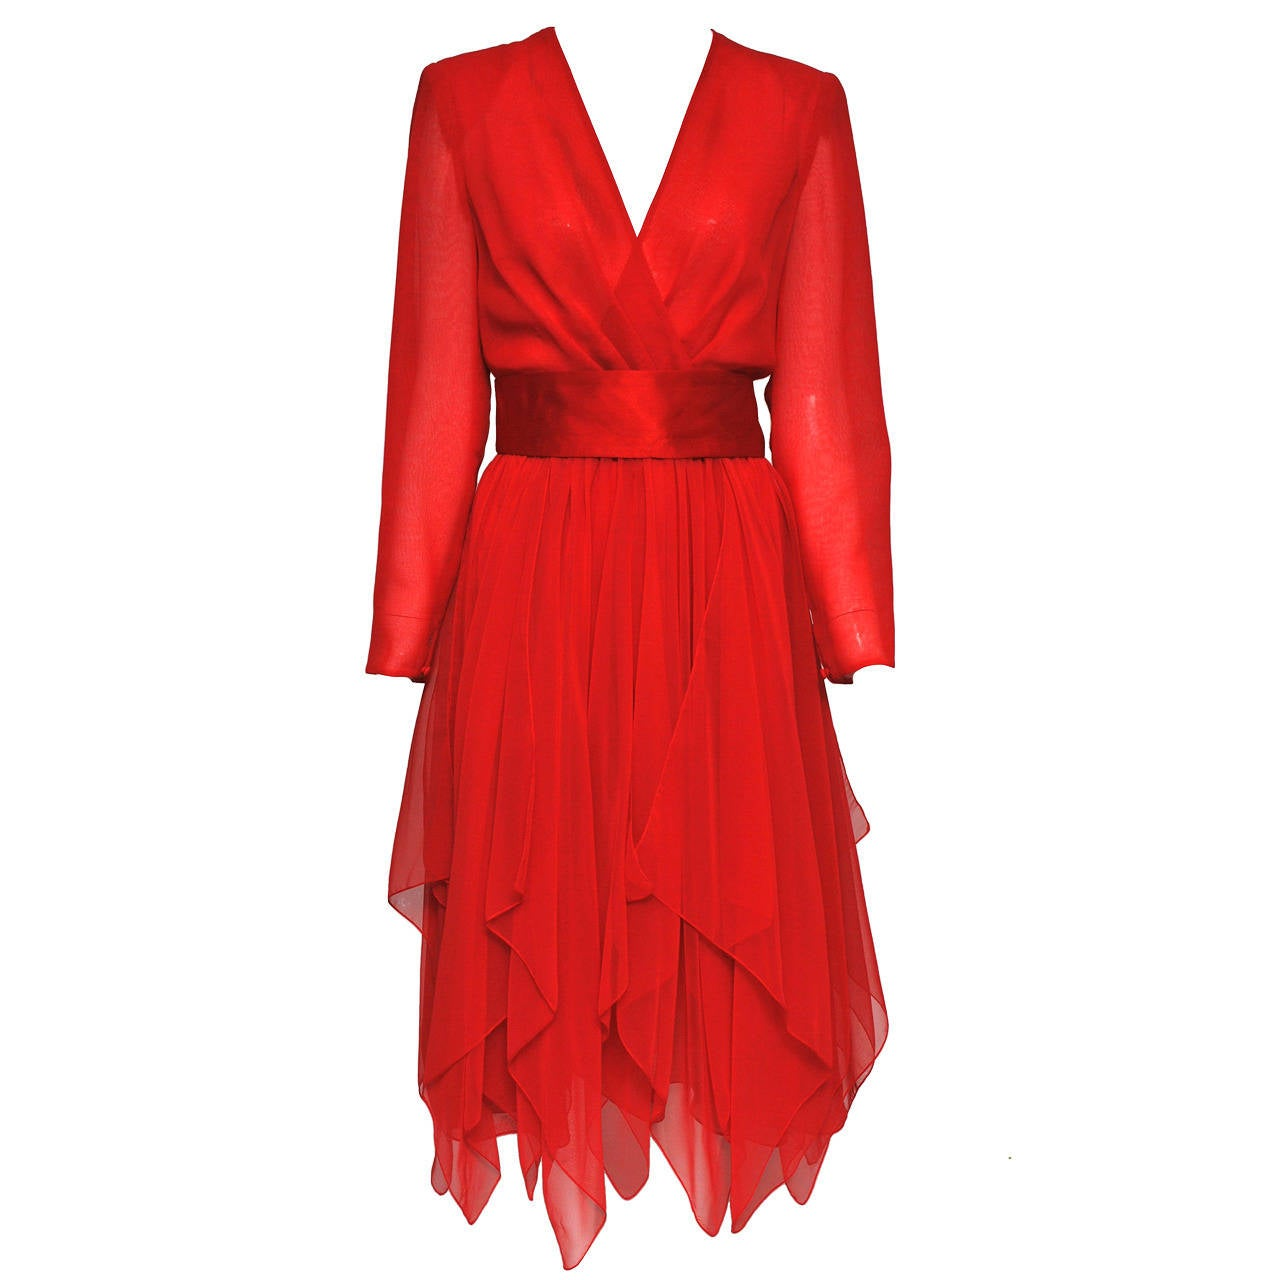 Estevez Red Chiffon Handkerchief Dress For Sale